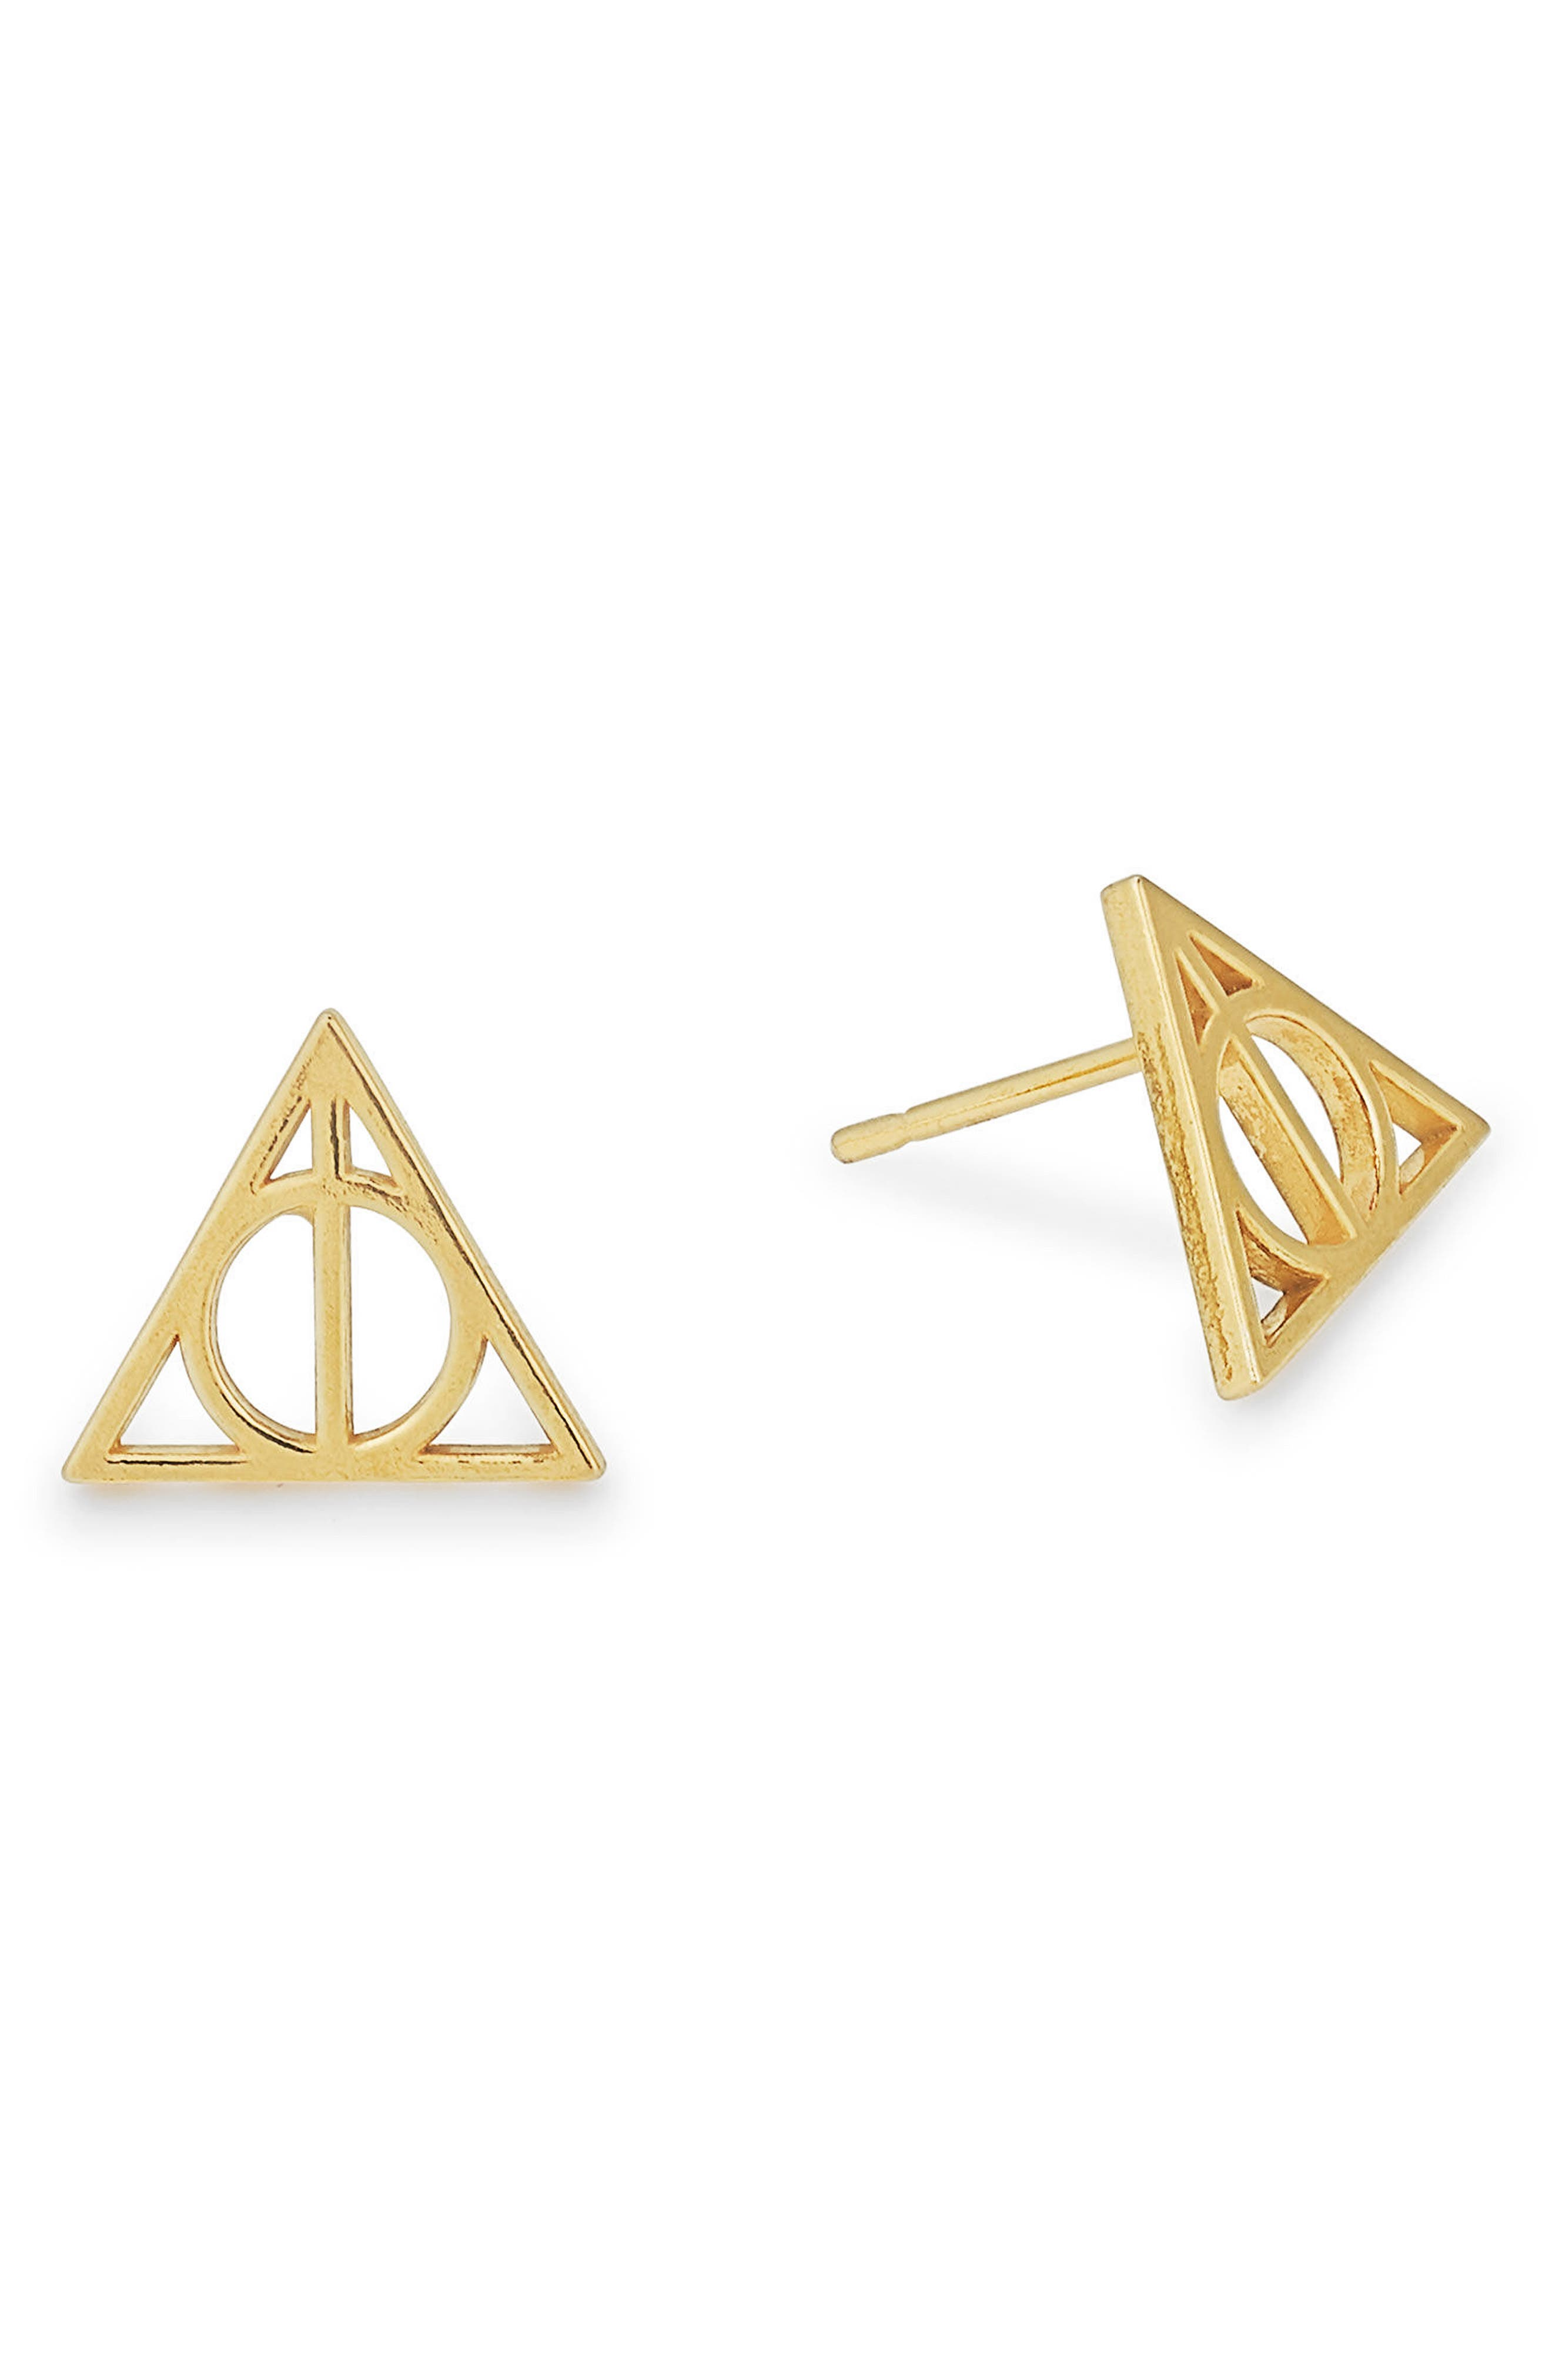 Alternate Image 1 Selected - Alex and Ani Harry Potter™ Deathly Hallows™ Earrings